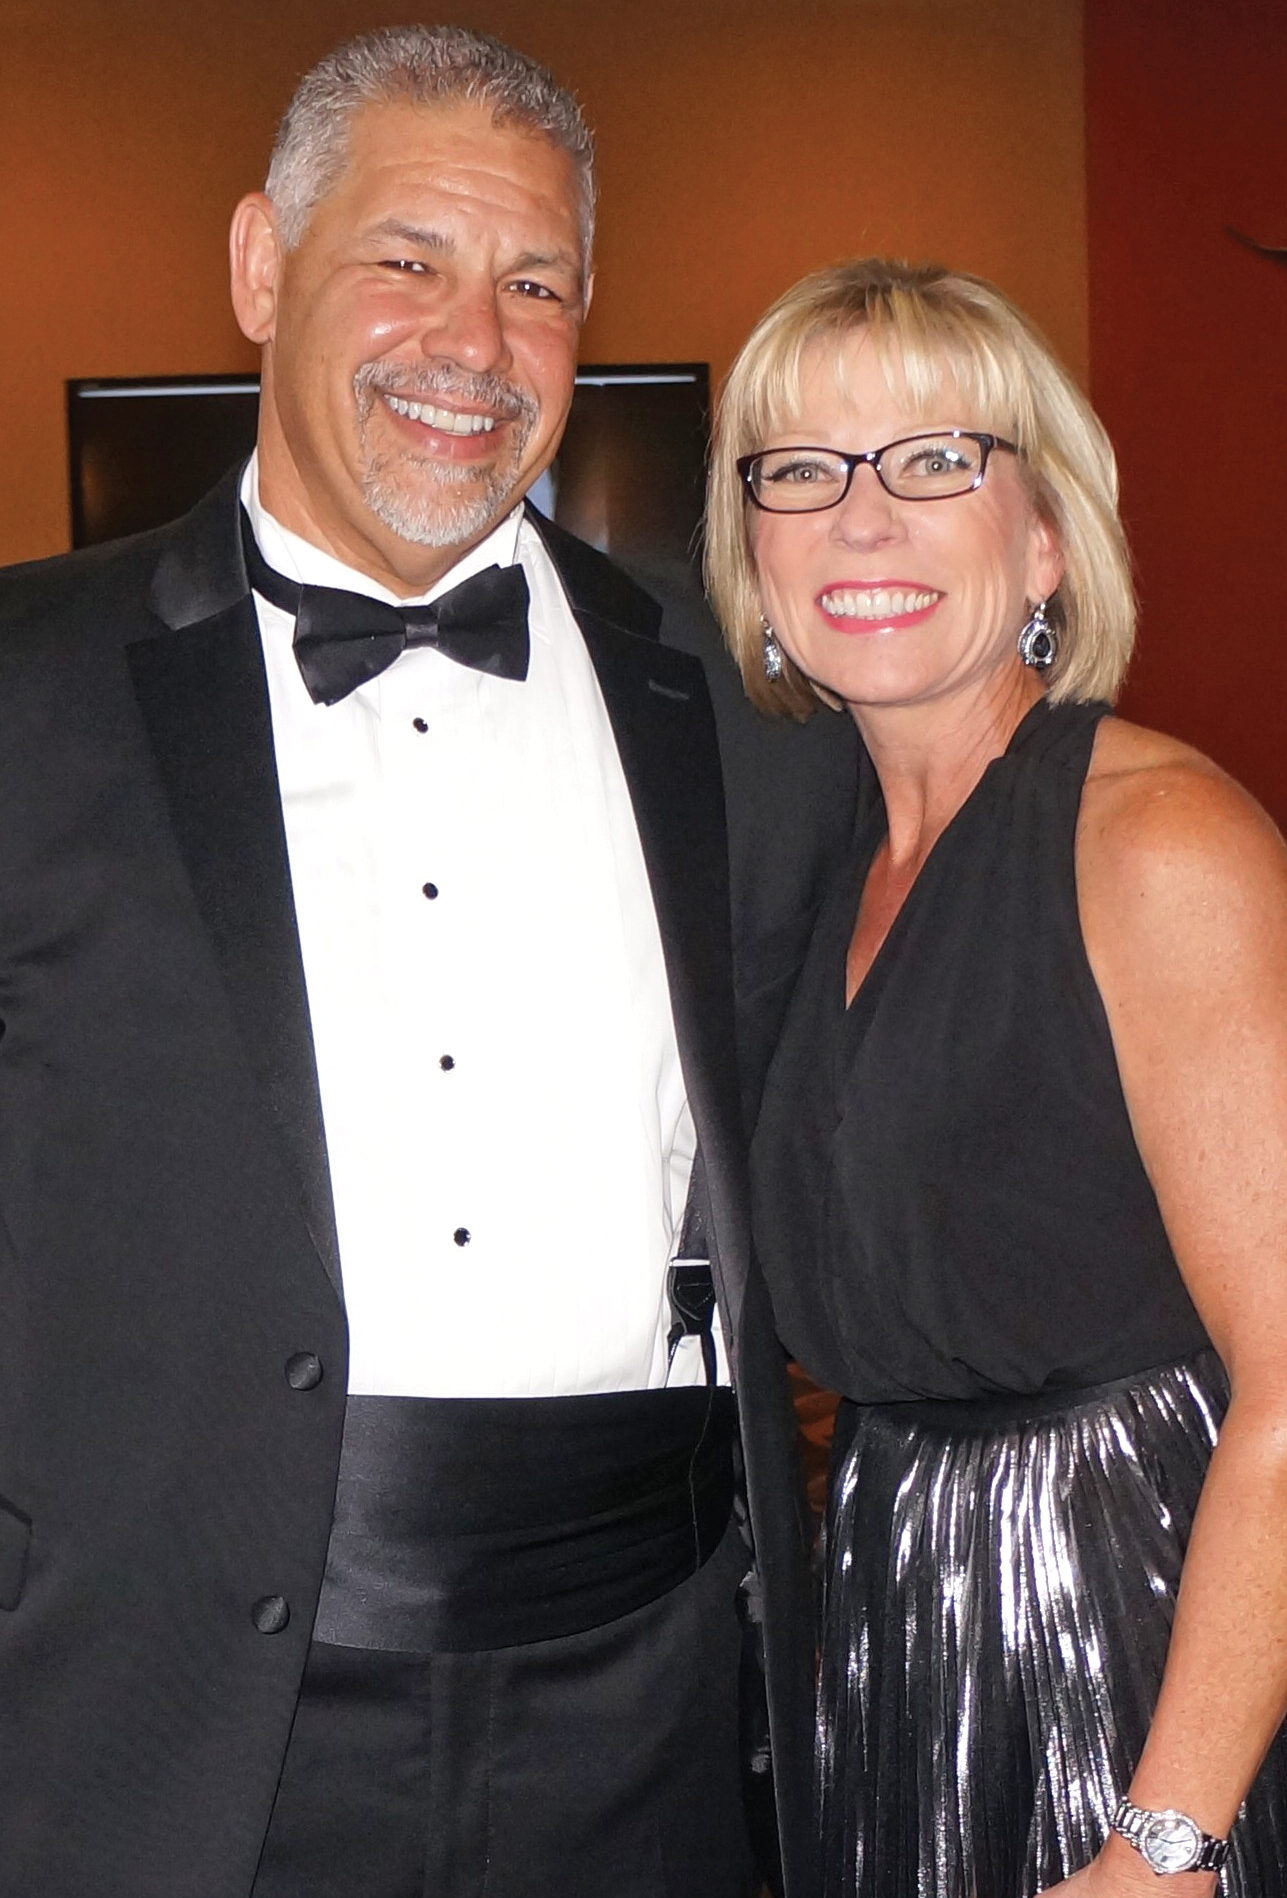 Bay Oaks Women's Association President Jodi Schnabel and her husband, Kirby, are ready to welcome the arriving crowd as the annual BOWA gala gets underway.